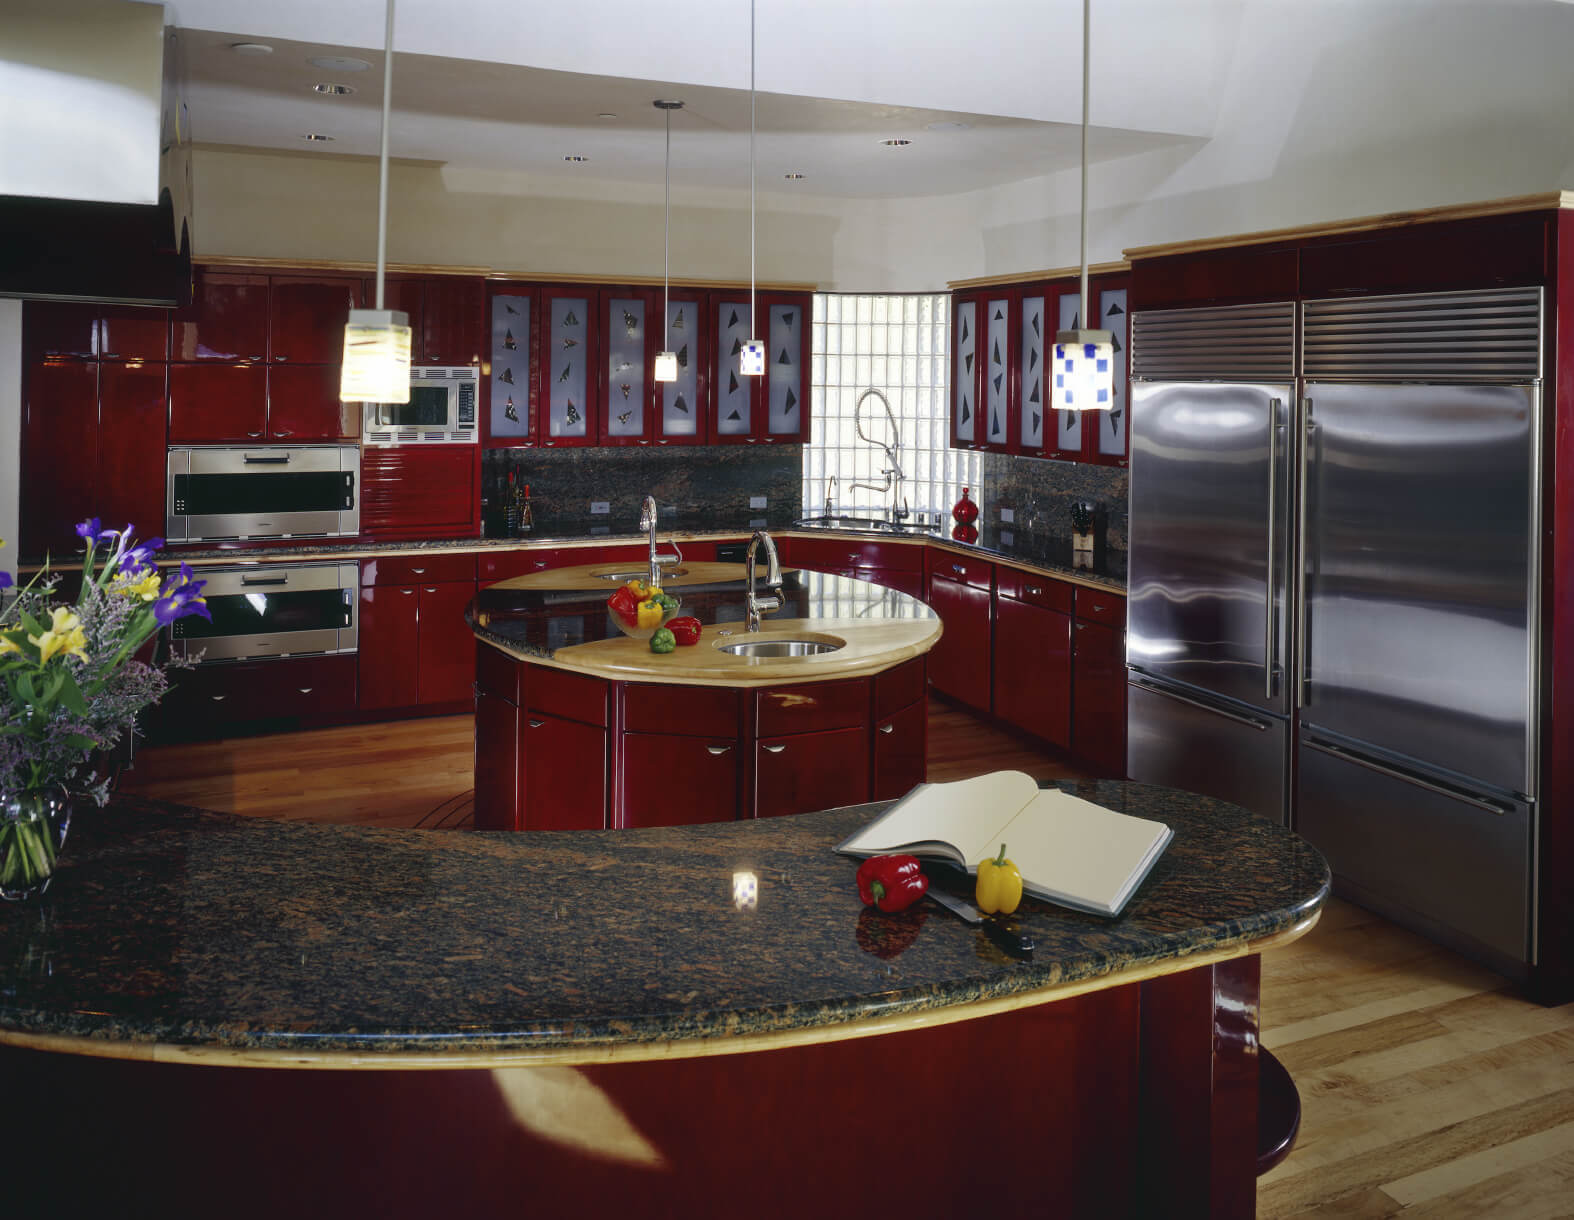 20 of the most popular kitchen designs on home stratosphere for 10 x 20 kitchen design